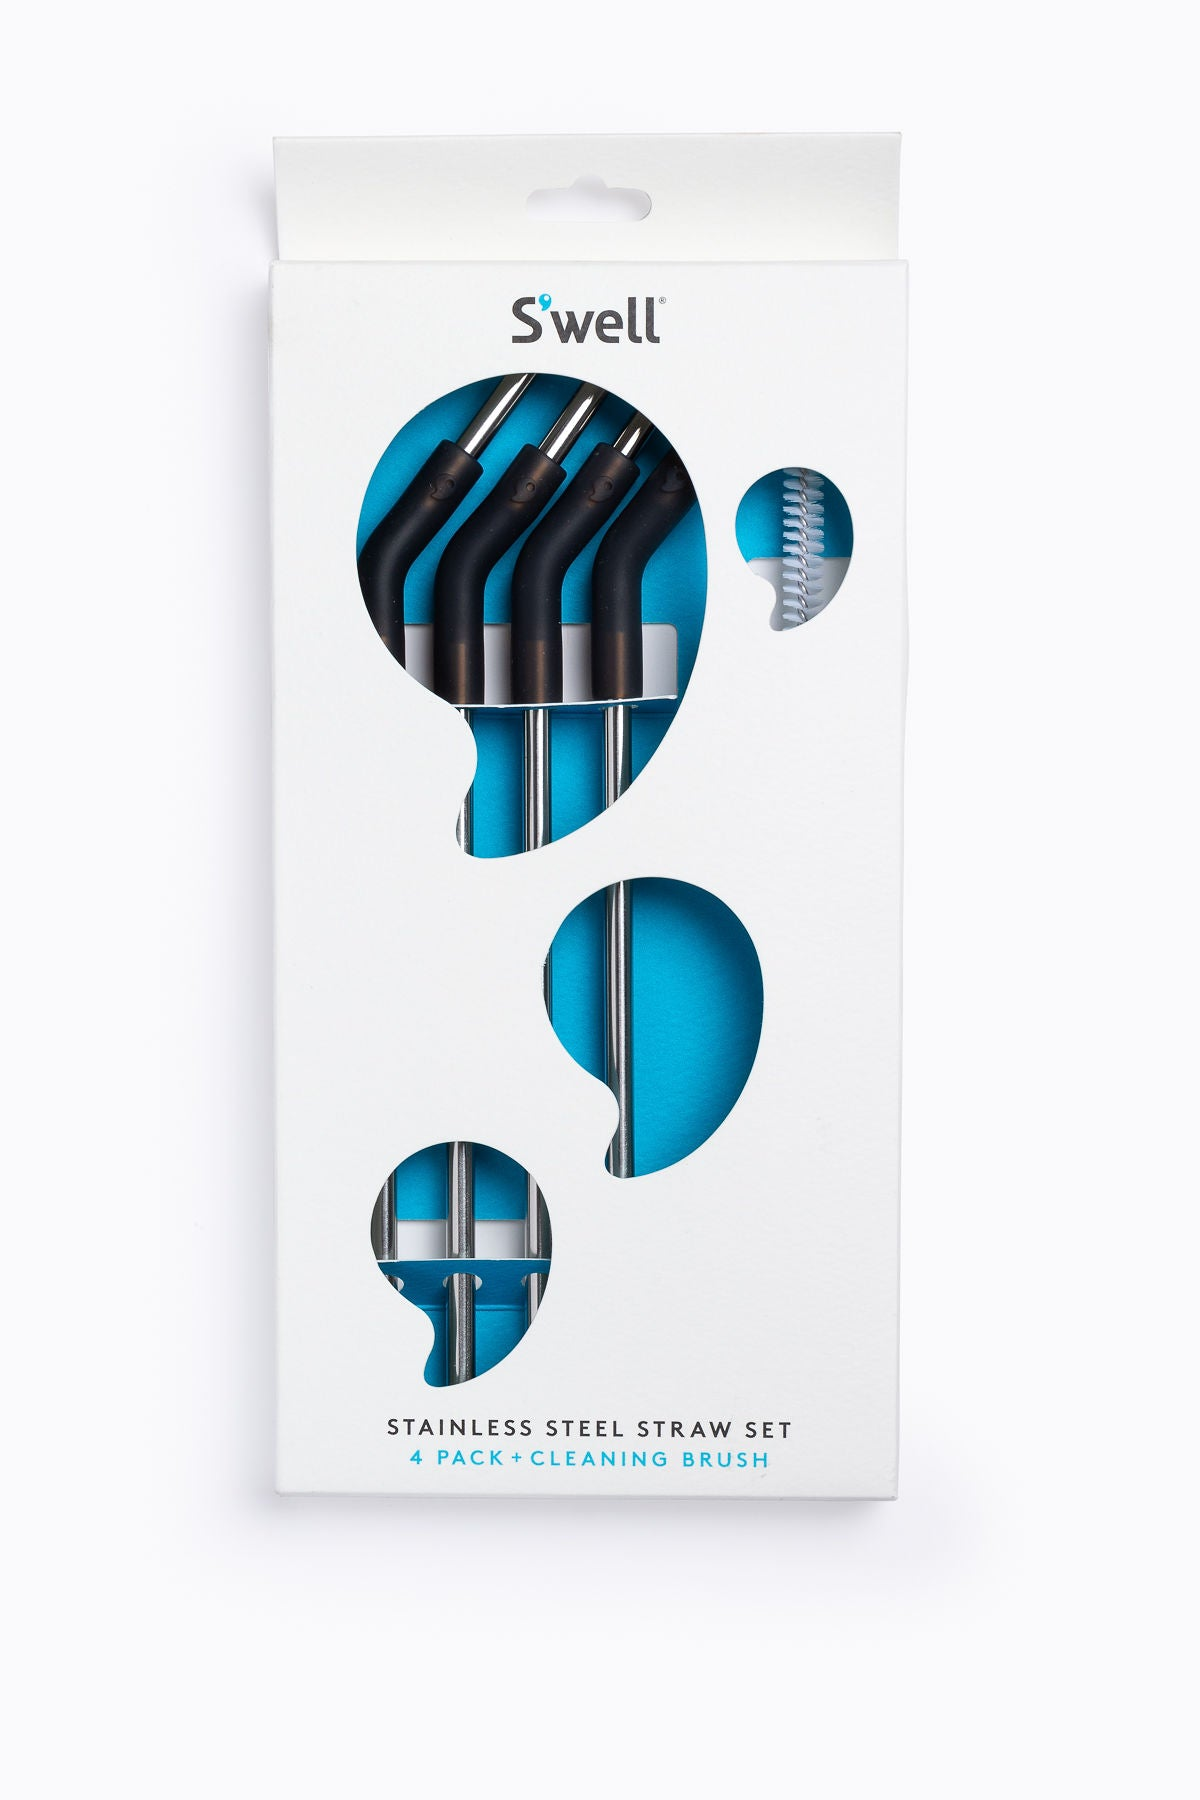 S'Well: Stainless Steel Straw Set